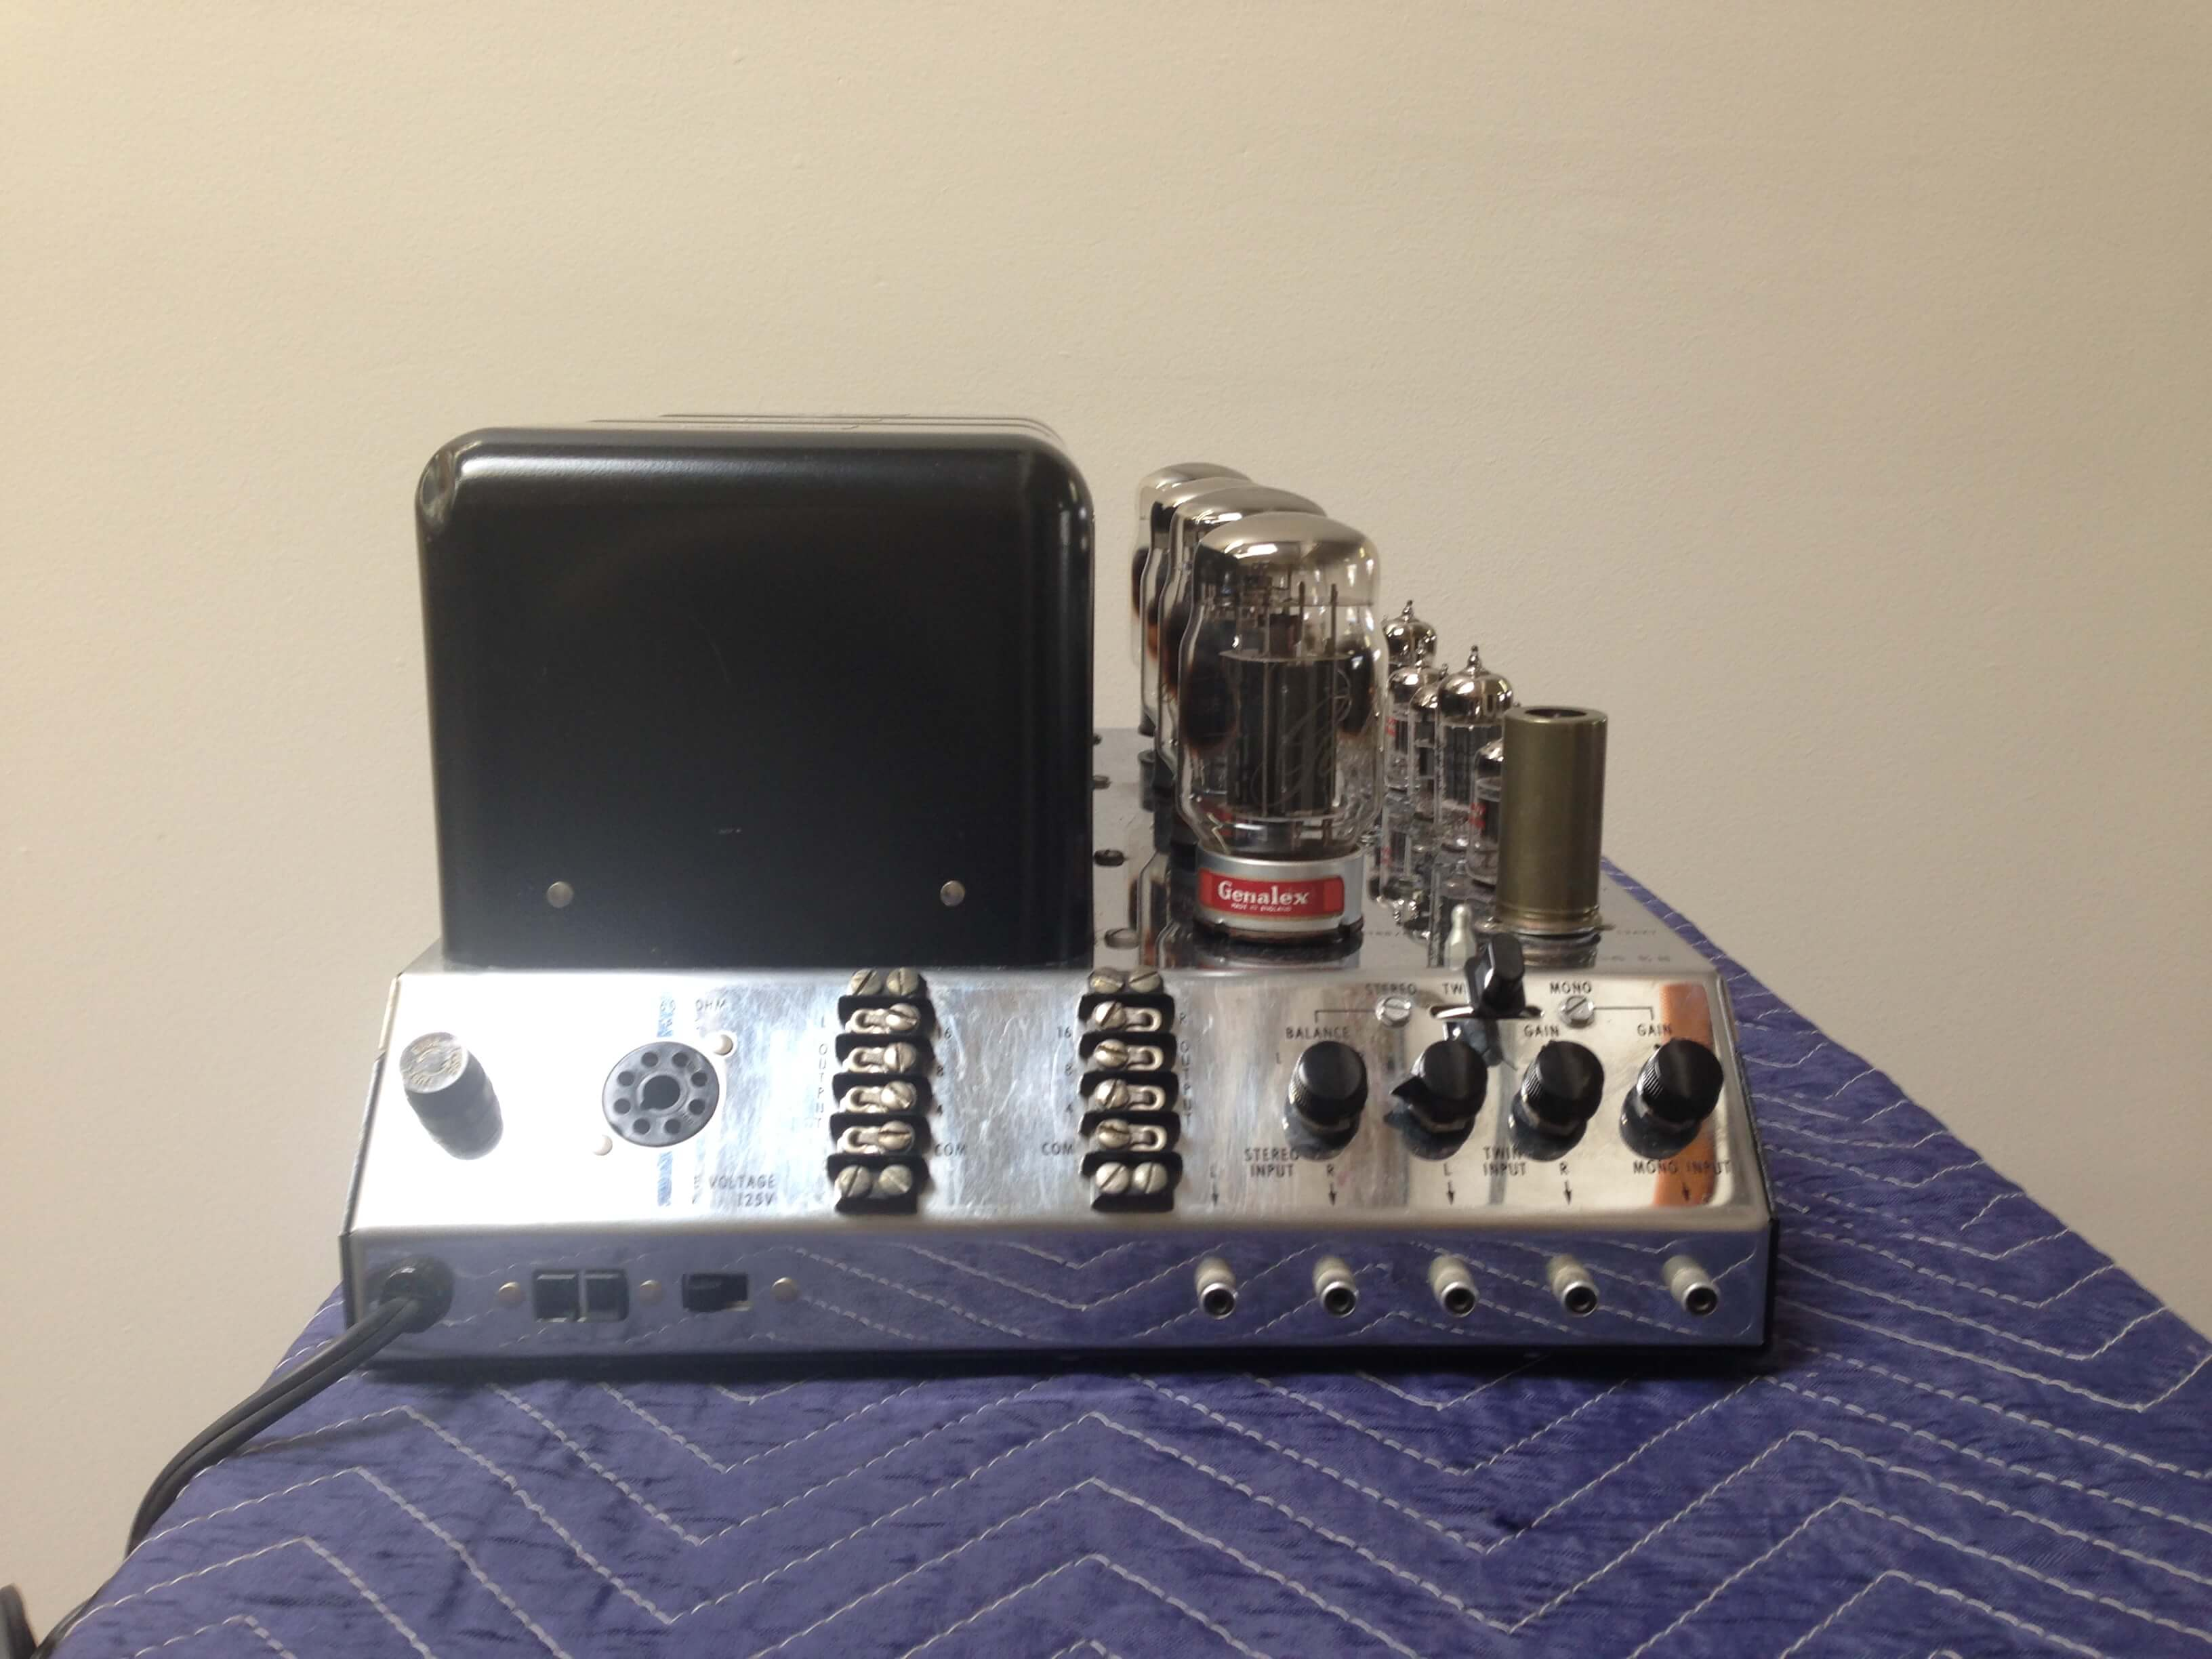 McIntosh MC 275 amplifier (sold only with C22 preamplifier)